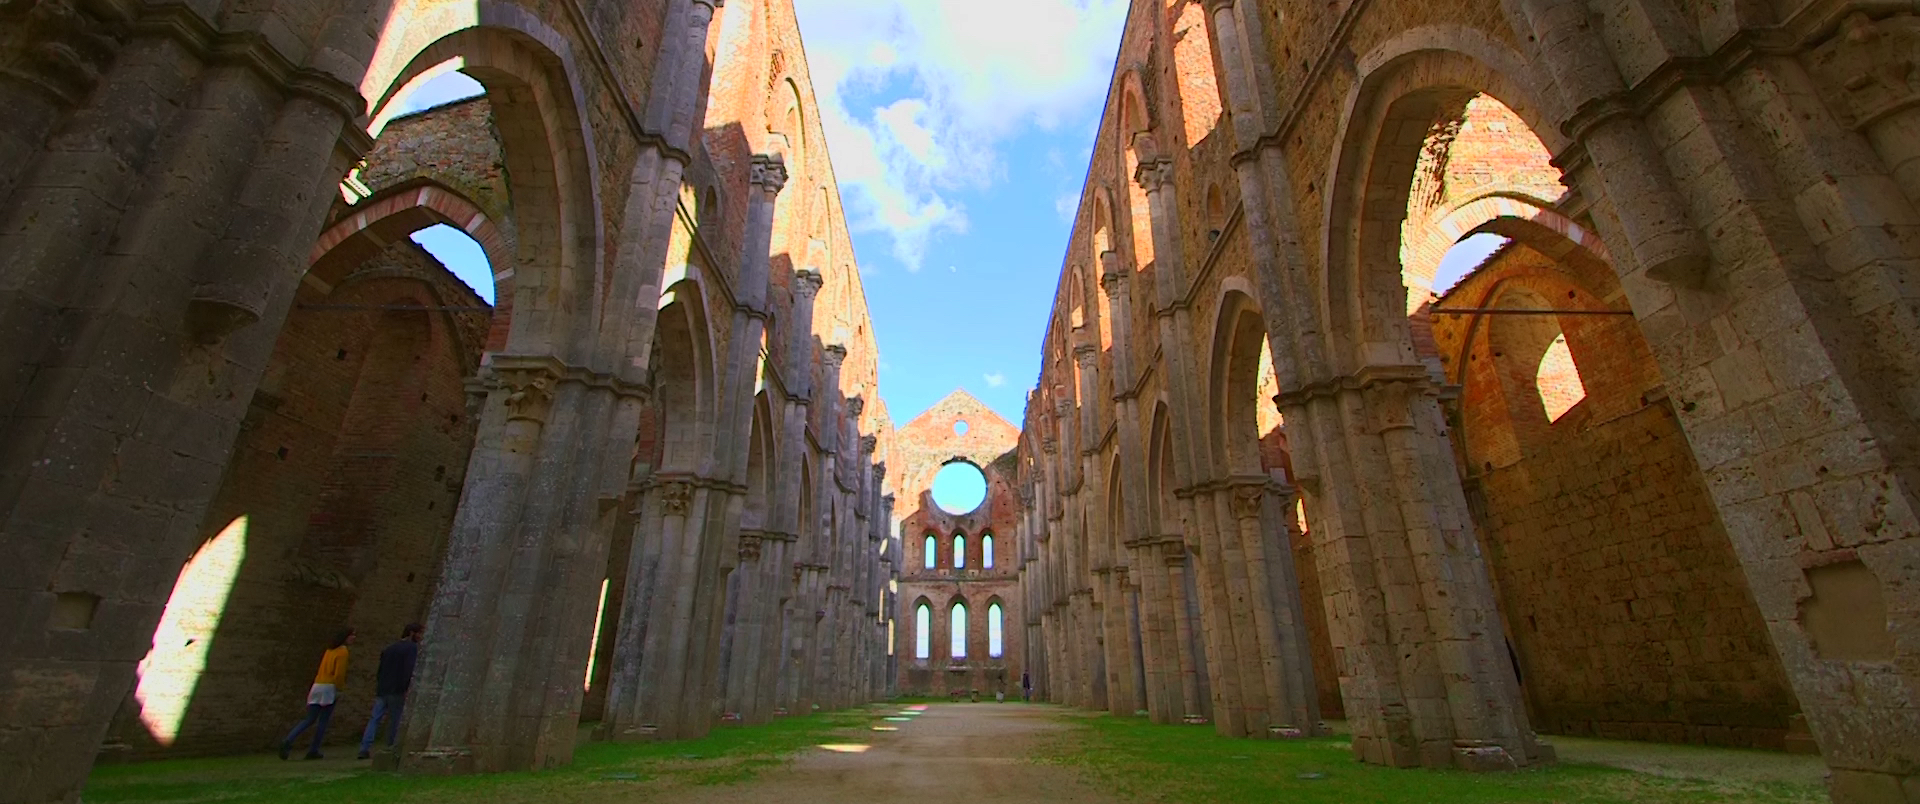 Love Me in Tuscany - SanGalgano